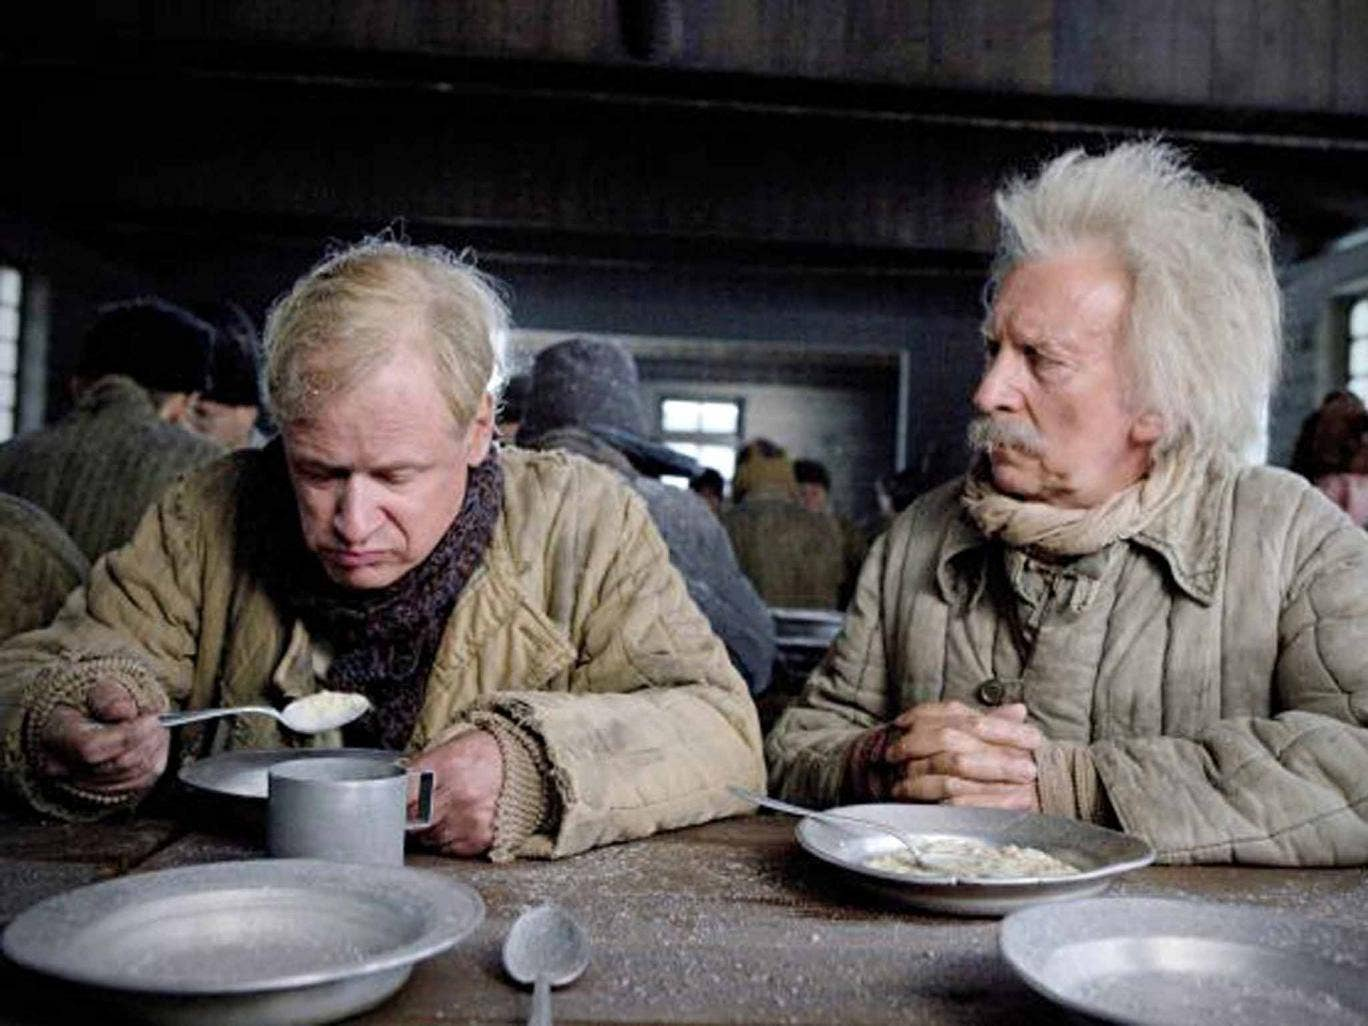 Robert Gustafsson and David Shackleton in 'The 100-Year-Old Man Who Climbed Out the Window and Disappeared'